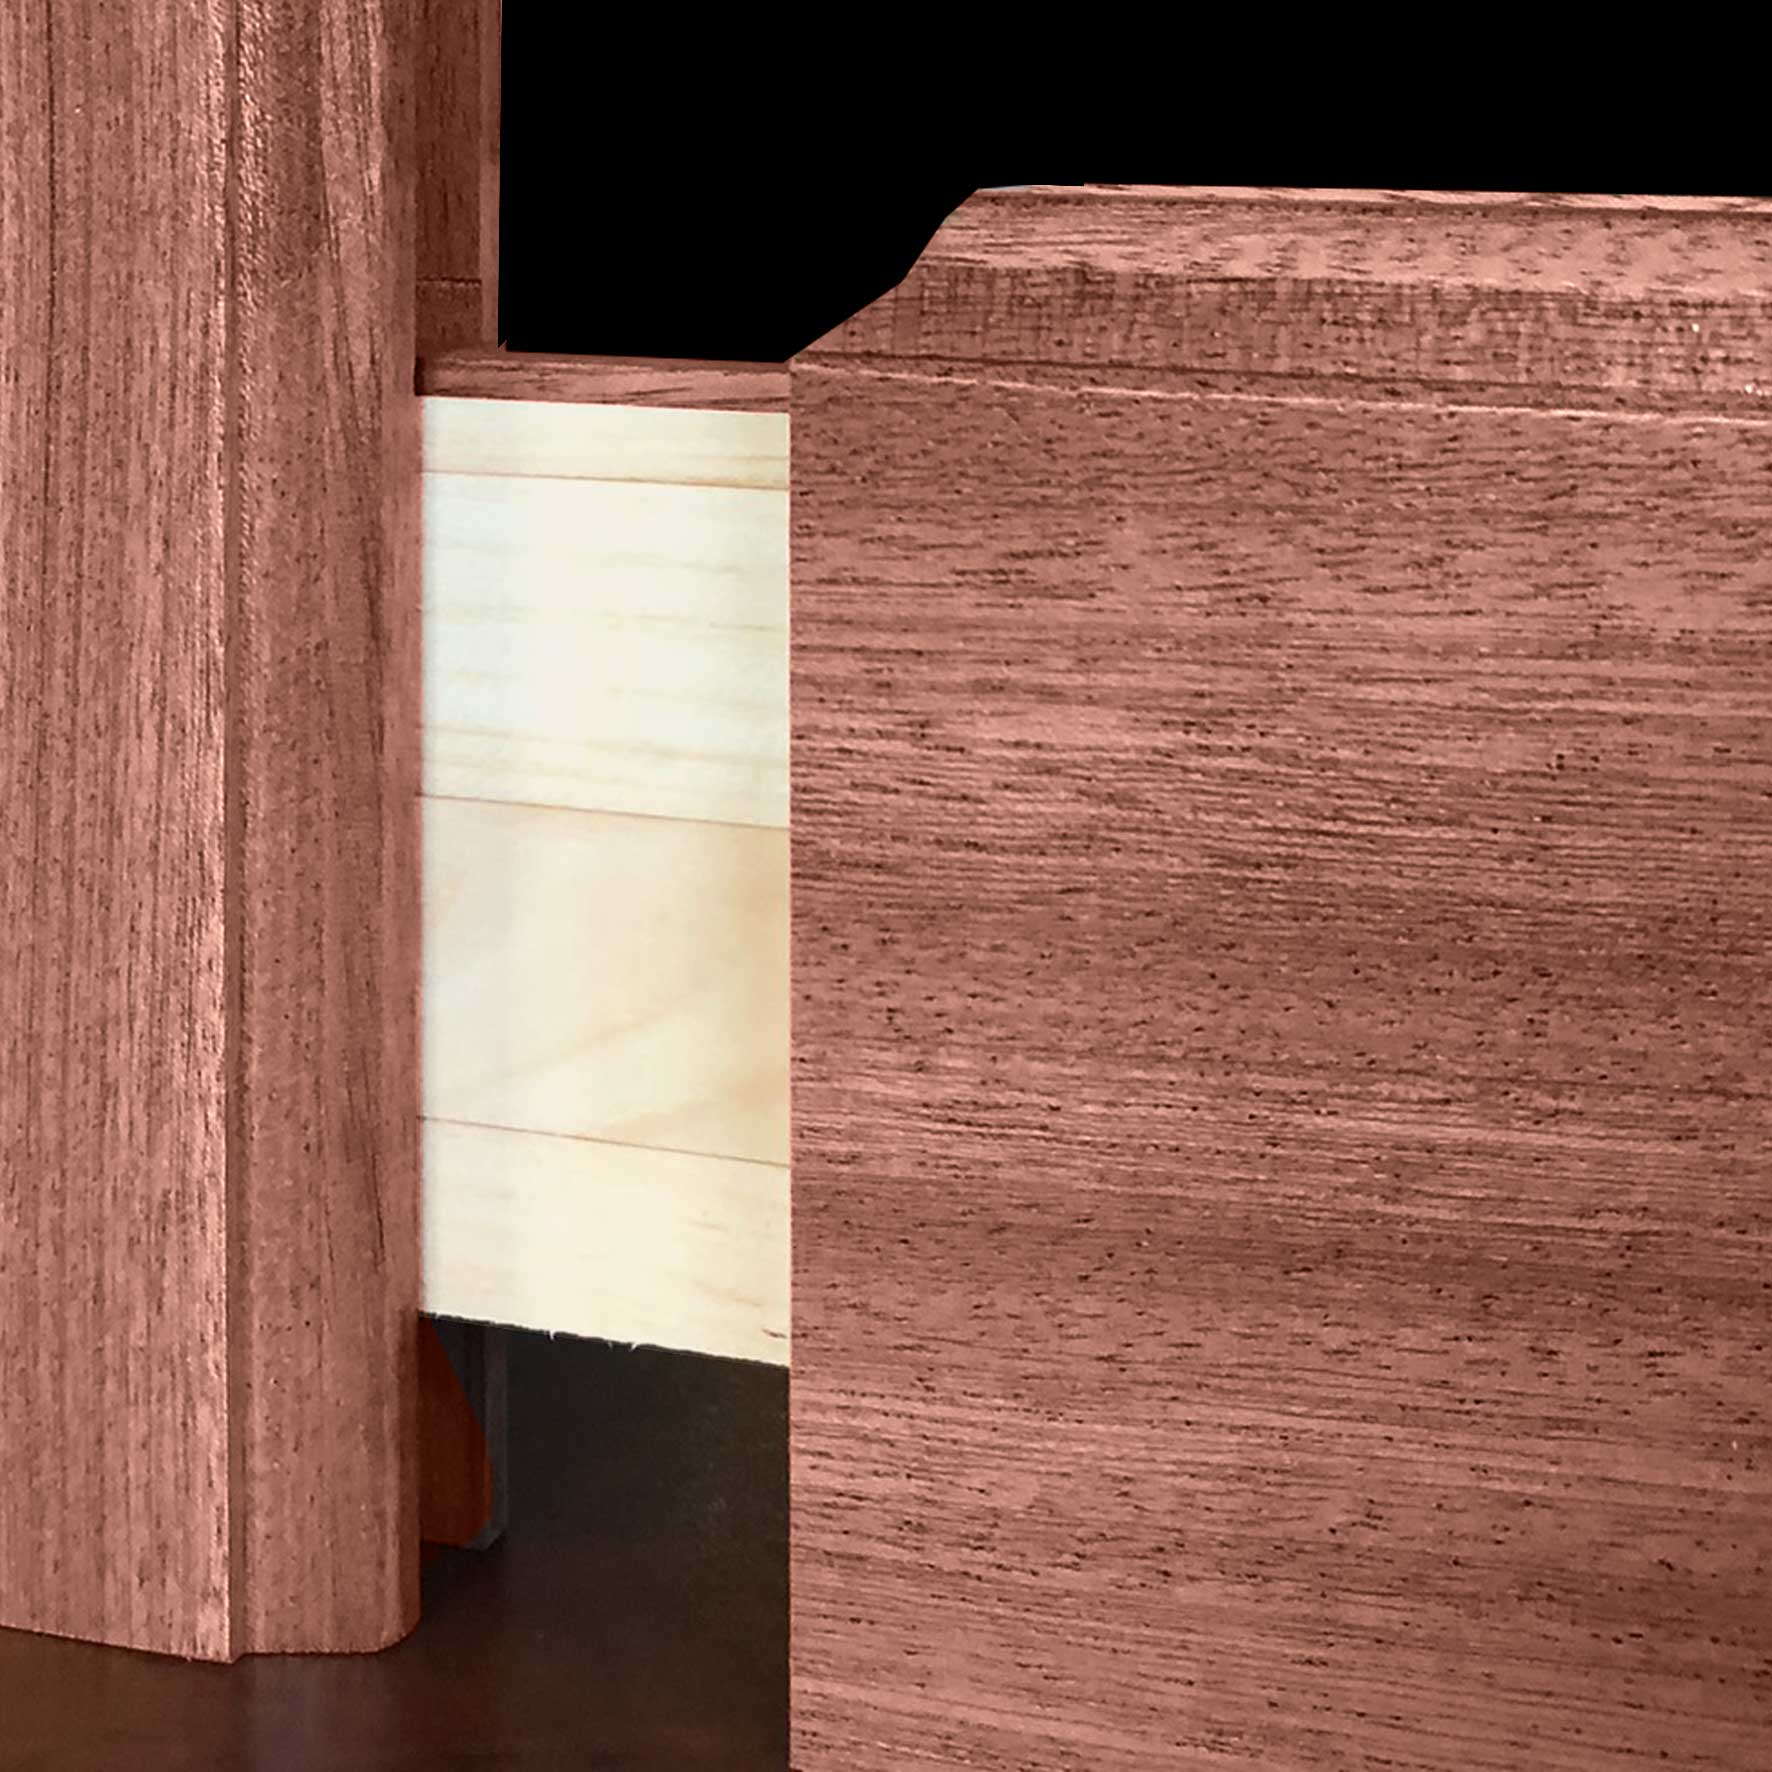 Photo of traditional mortise and tenon